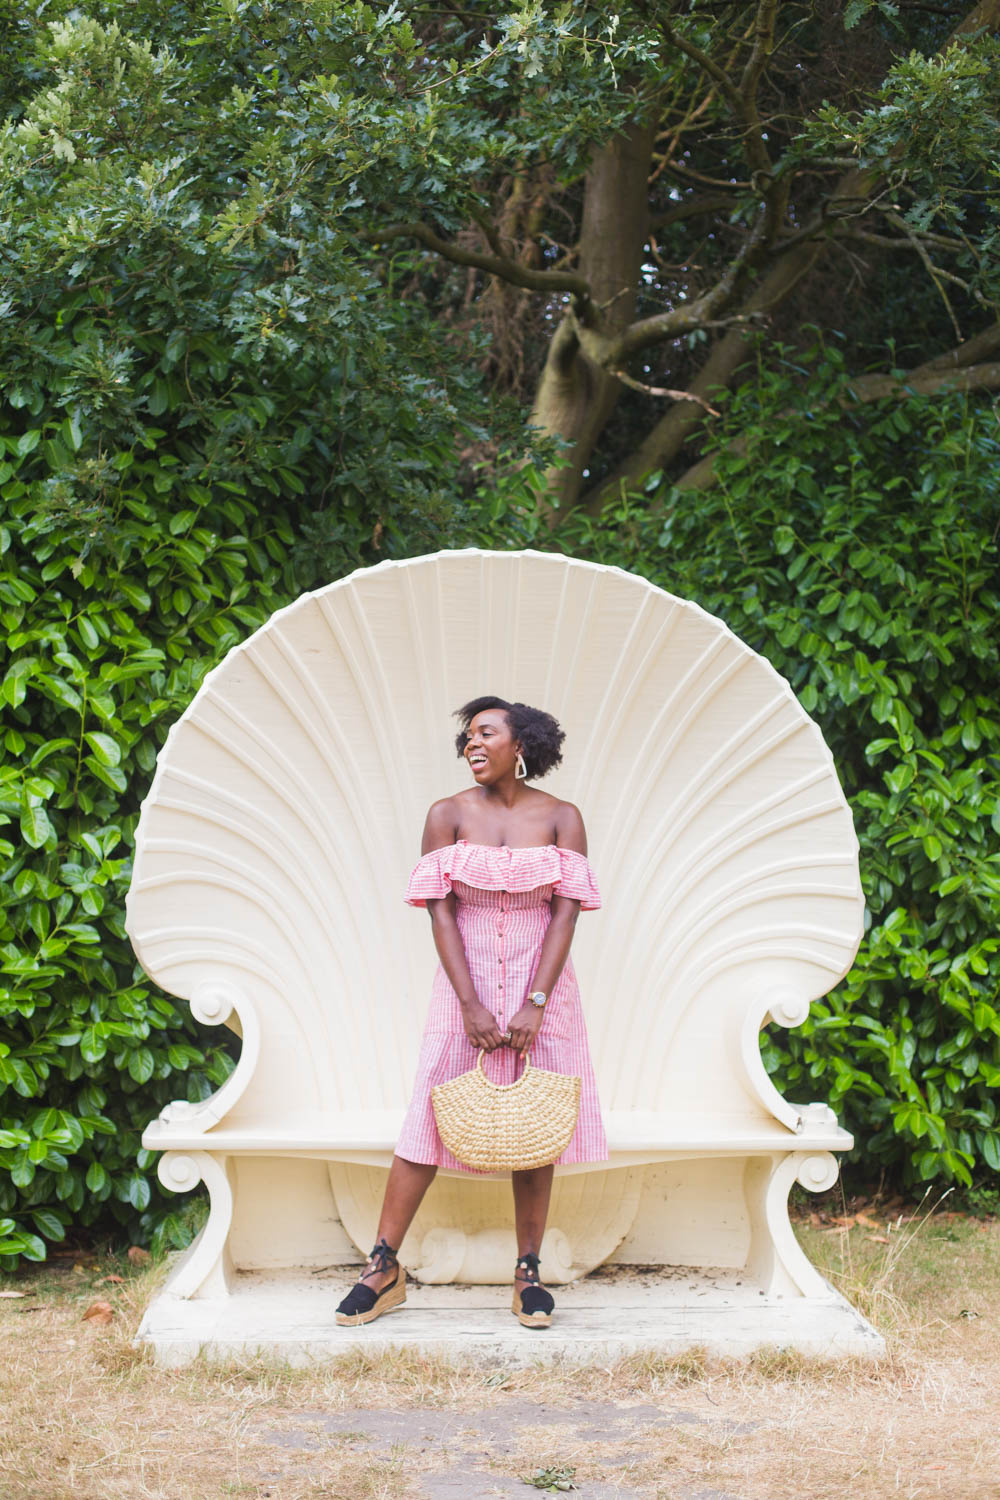 Styling a Next off-the-shoulder dress - Are you a fan of Refinery 29's Money Diaries? Fashion blogger Kristabel Plummer shares her attempt and insights into how much money she spends during 7 days in London. There's failed Topshop purchases and a laptop damaged by chocolate.